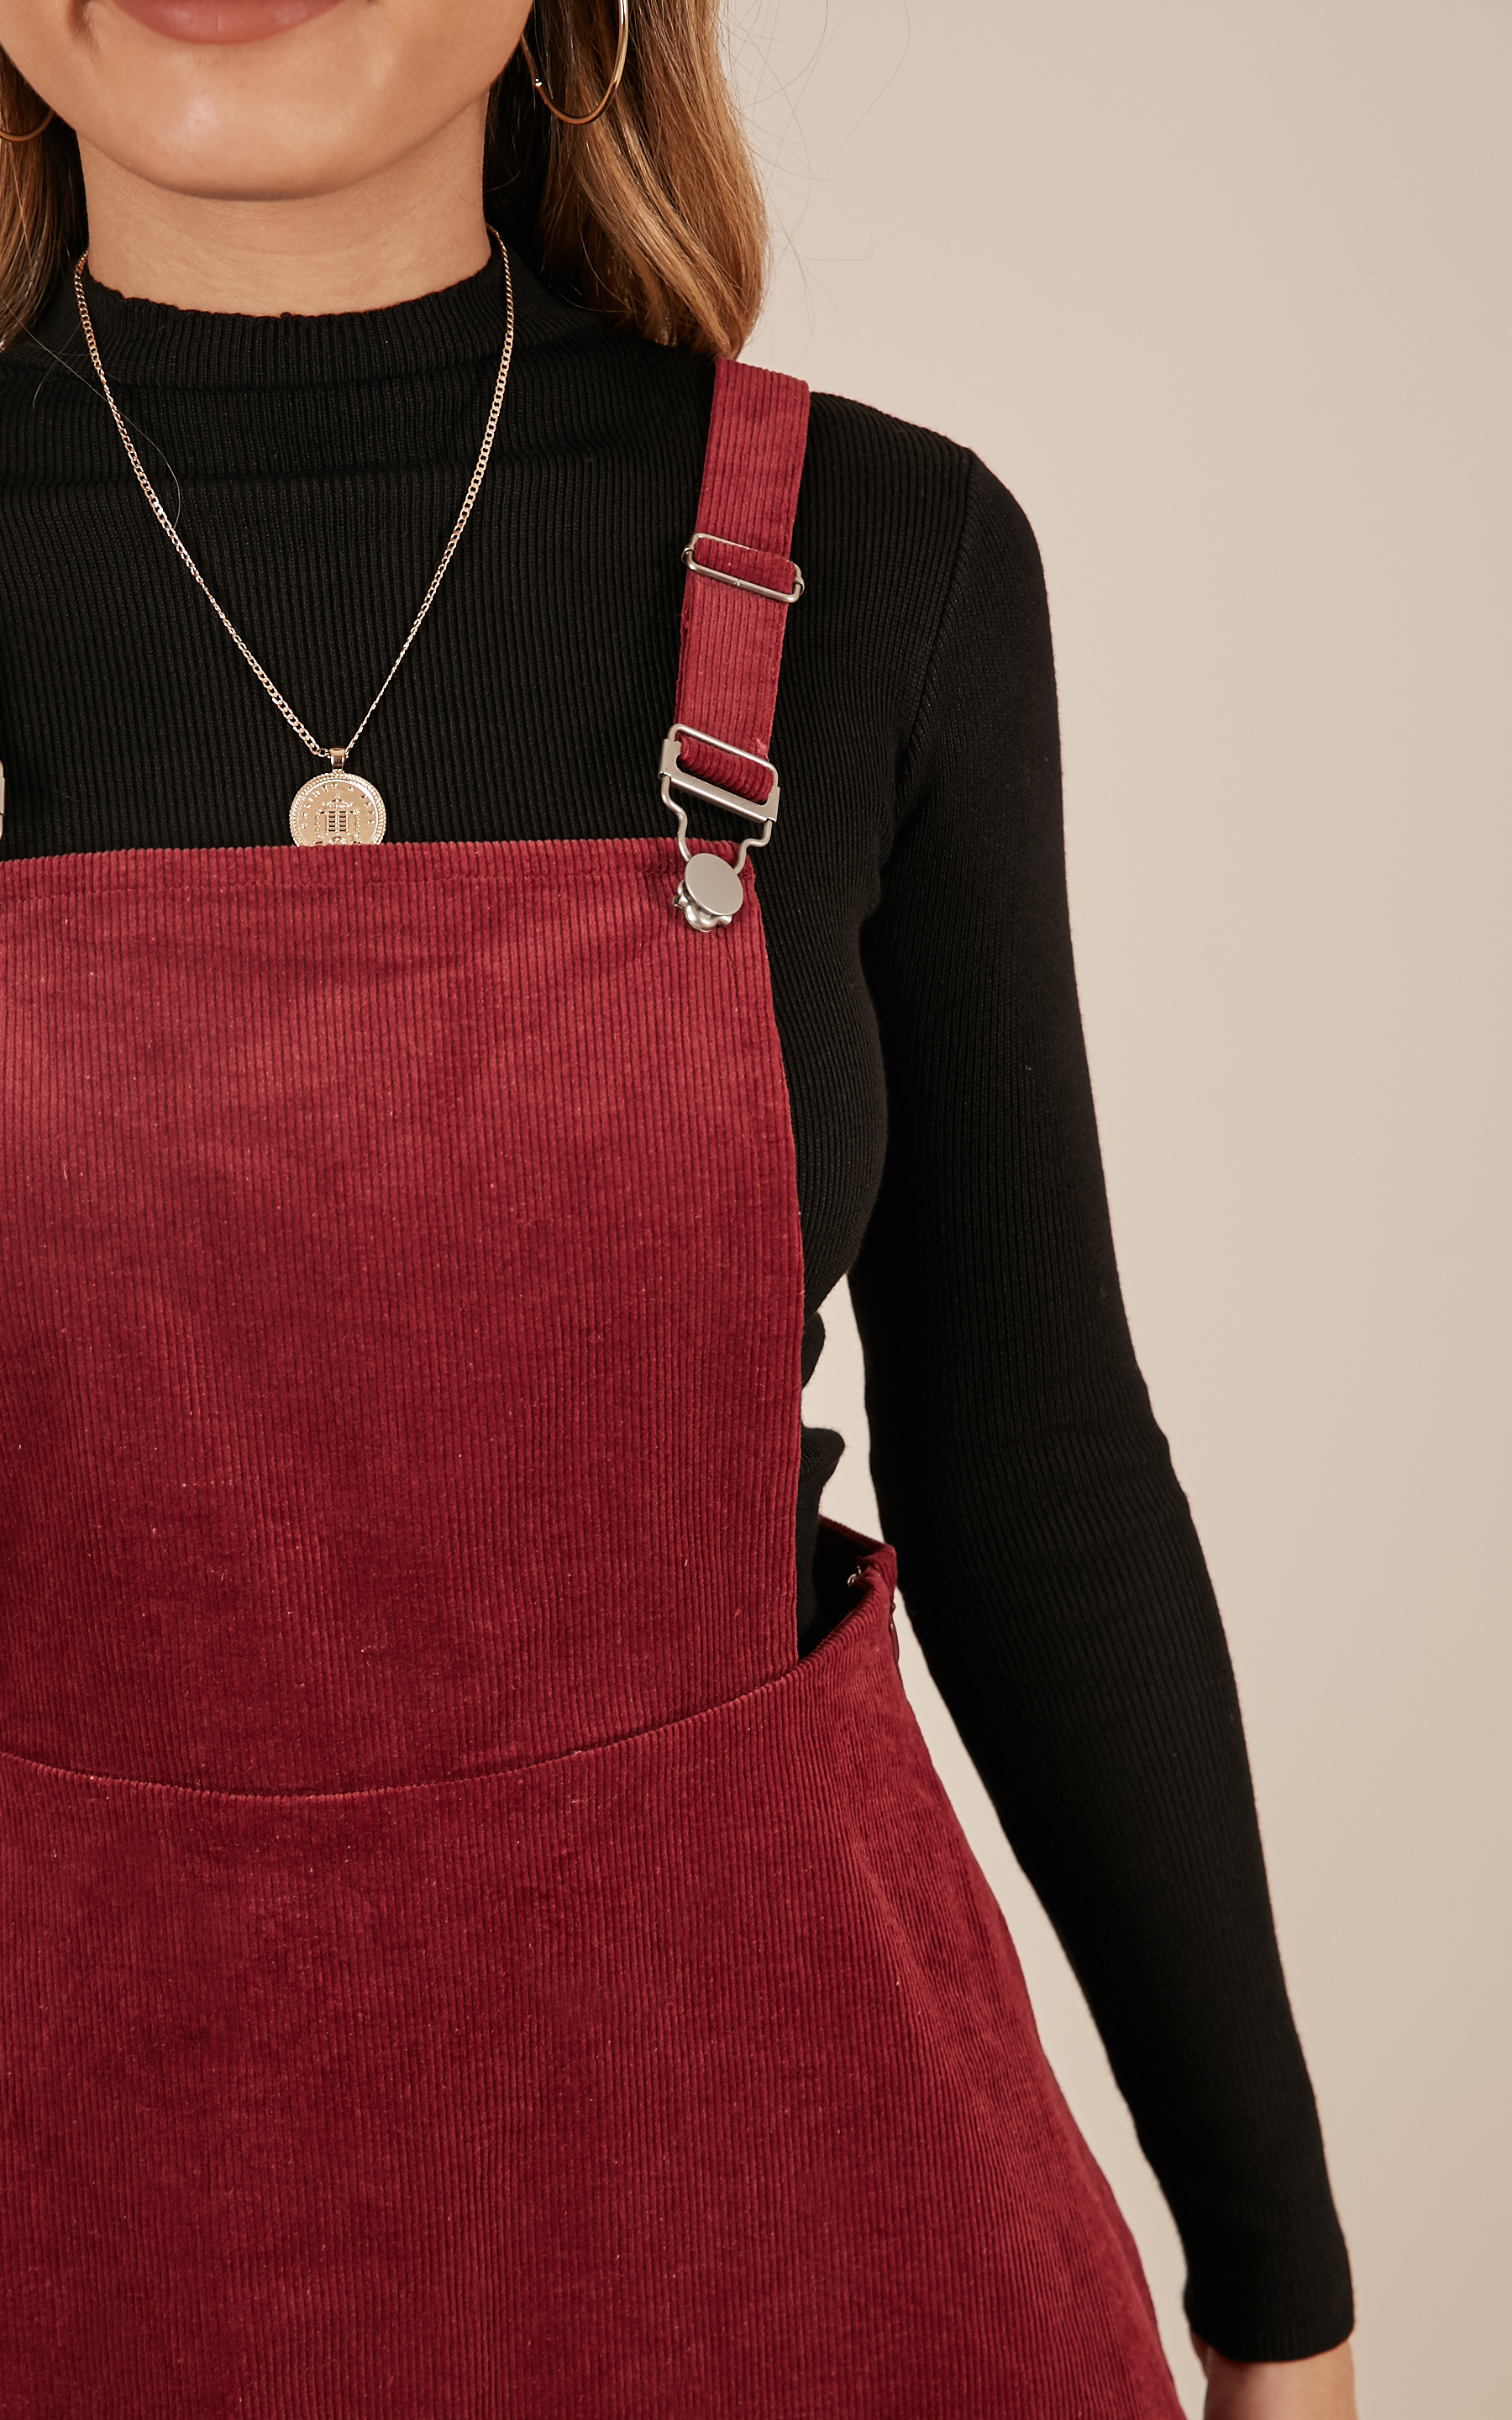 Thats What I Like Pinafore Dress In wine - 20 (XXXXL), Wine, hi-res image number null